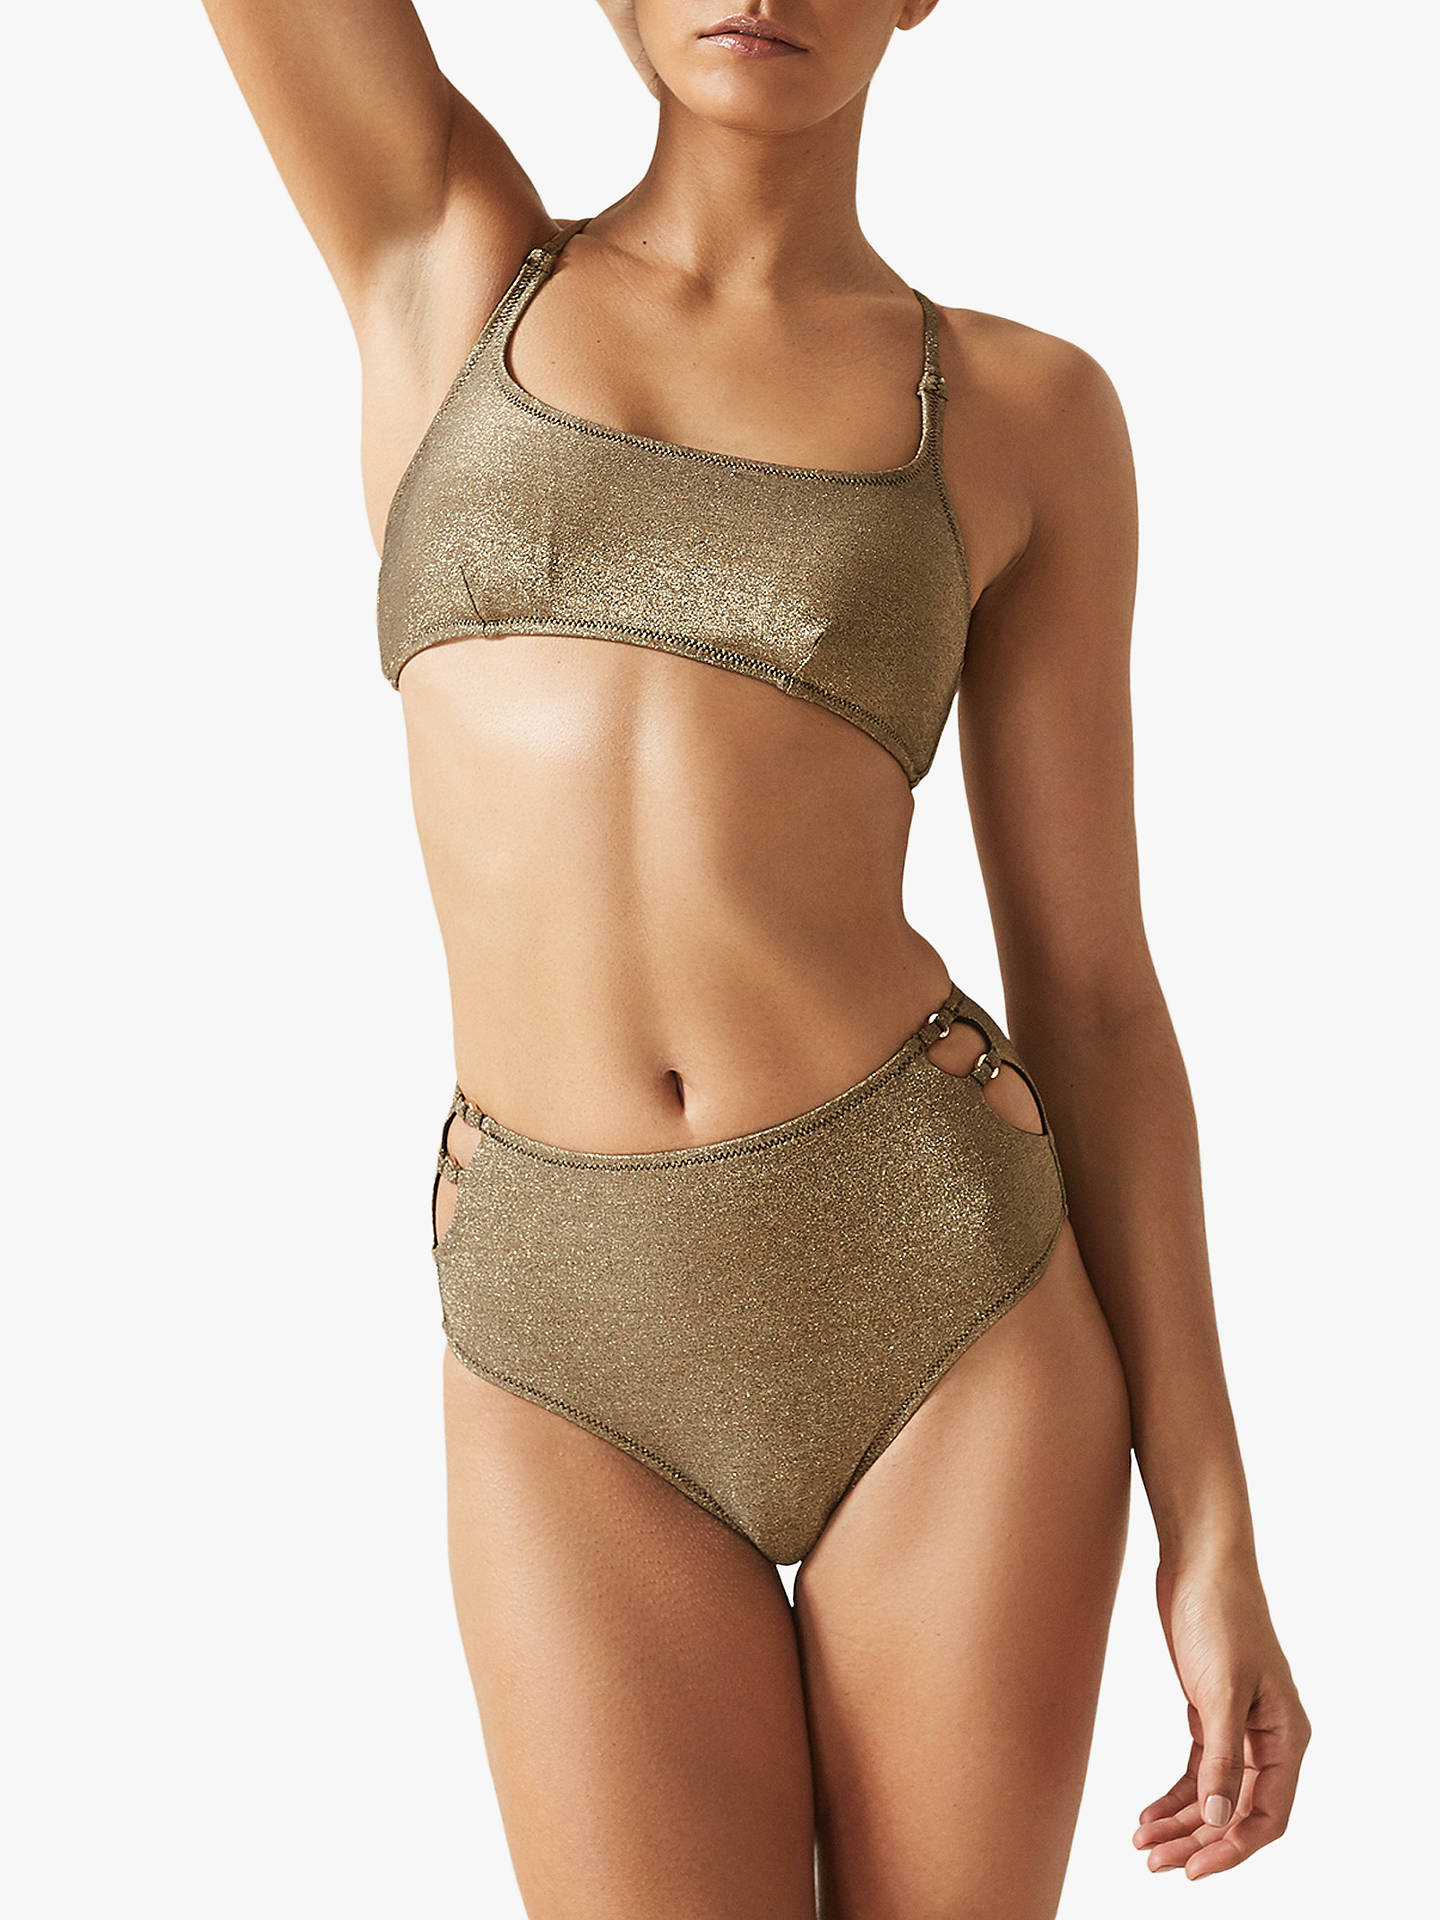 0601c37fe50 Buy Reiss Theodora High Waisted Bikini Bottoms, Gold, XS Online at  johnlewis.com ...